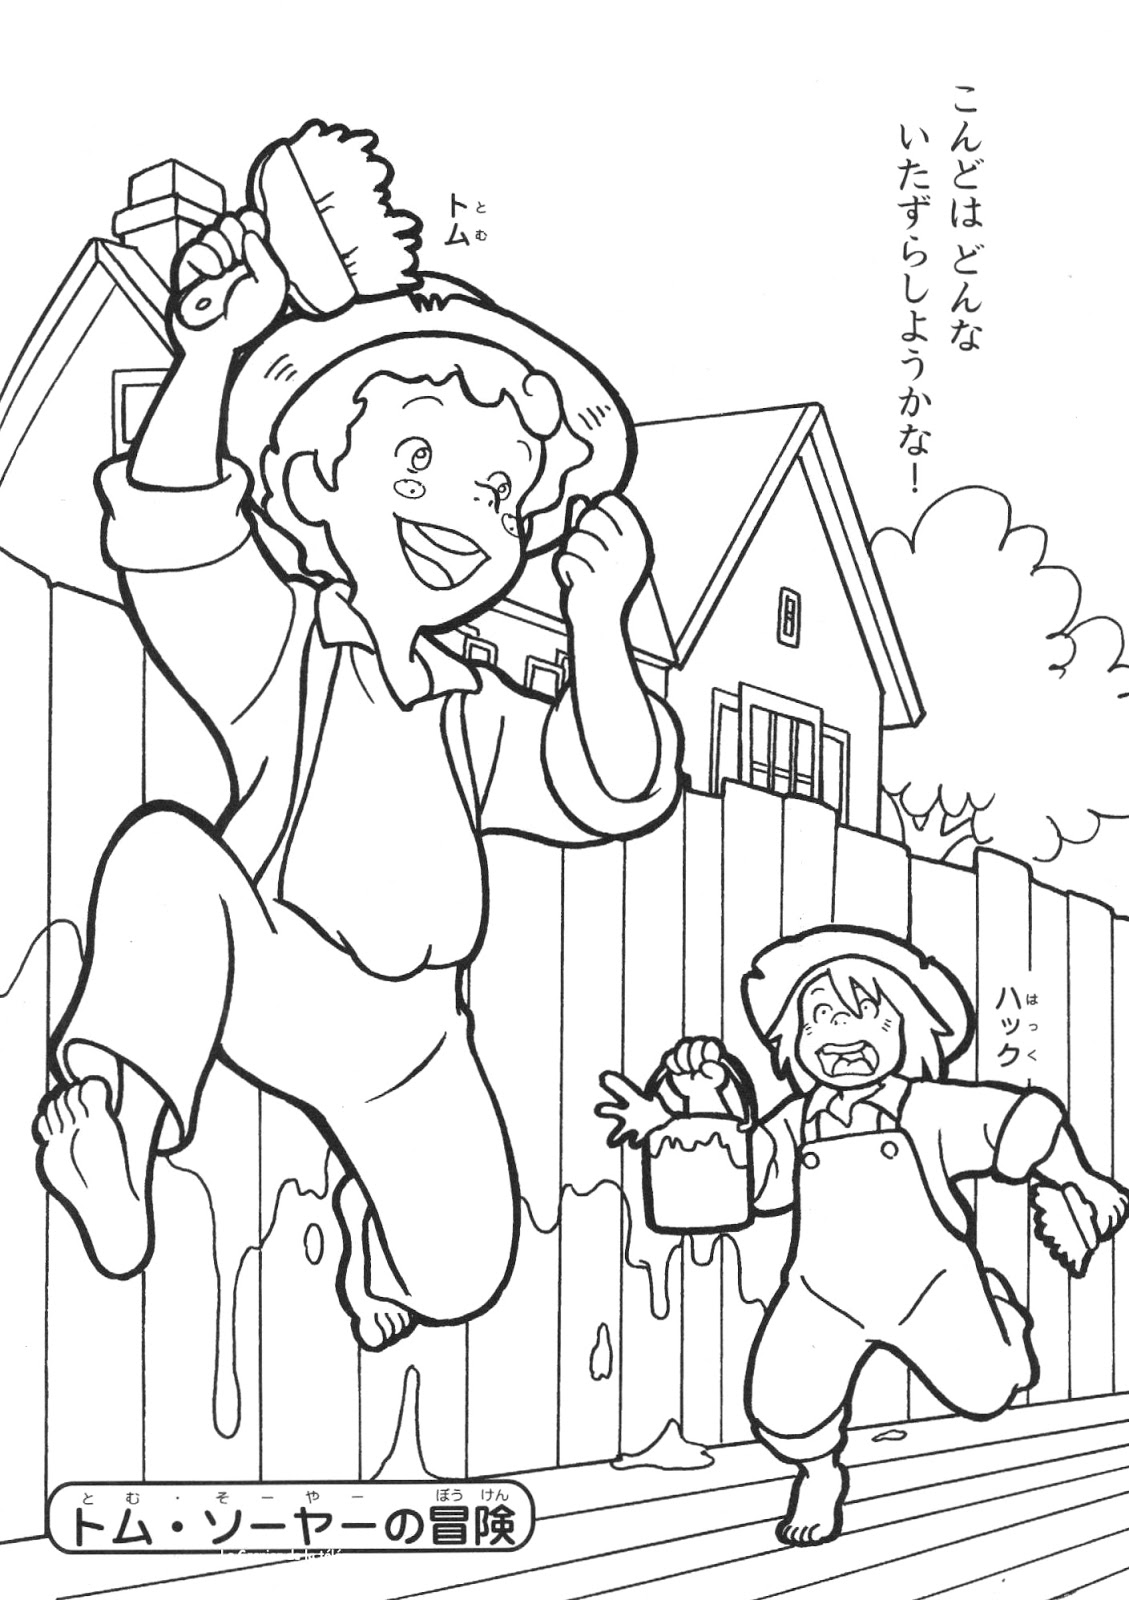 57 dessins de coloriage tom sawyer imprimer - Dessin dessin ...